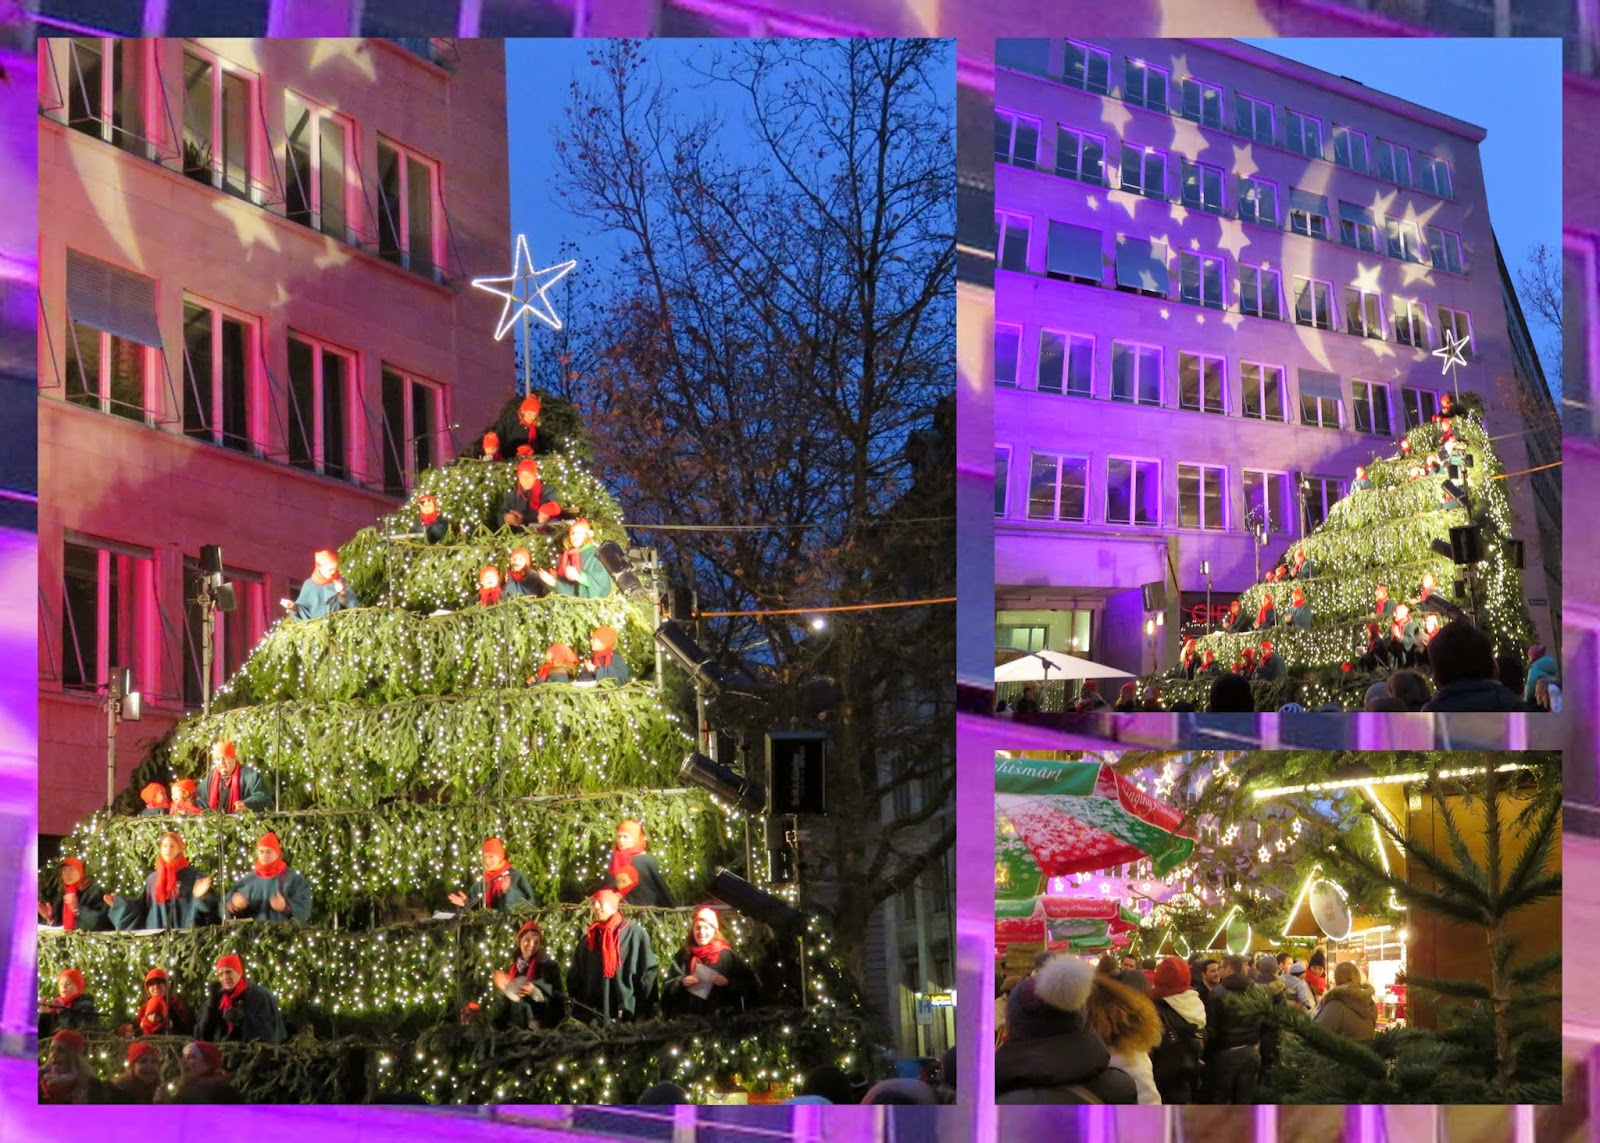 Zurich - Singing Christmas Tree Market